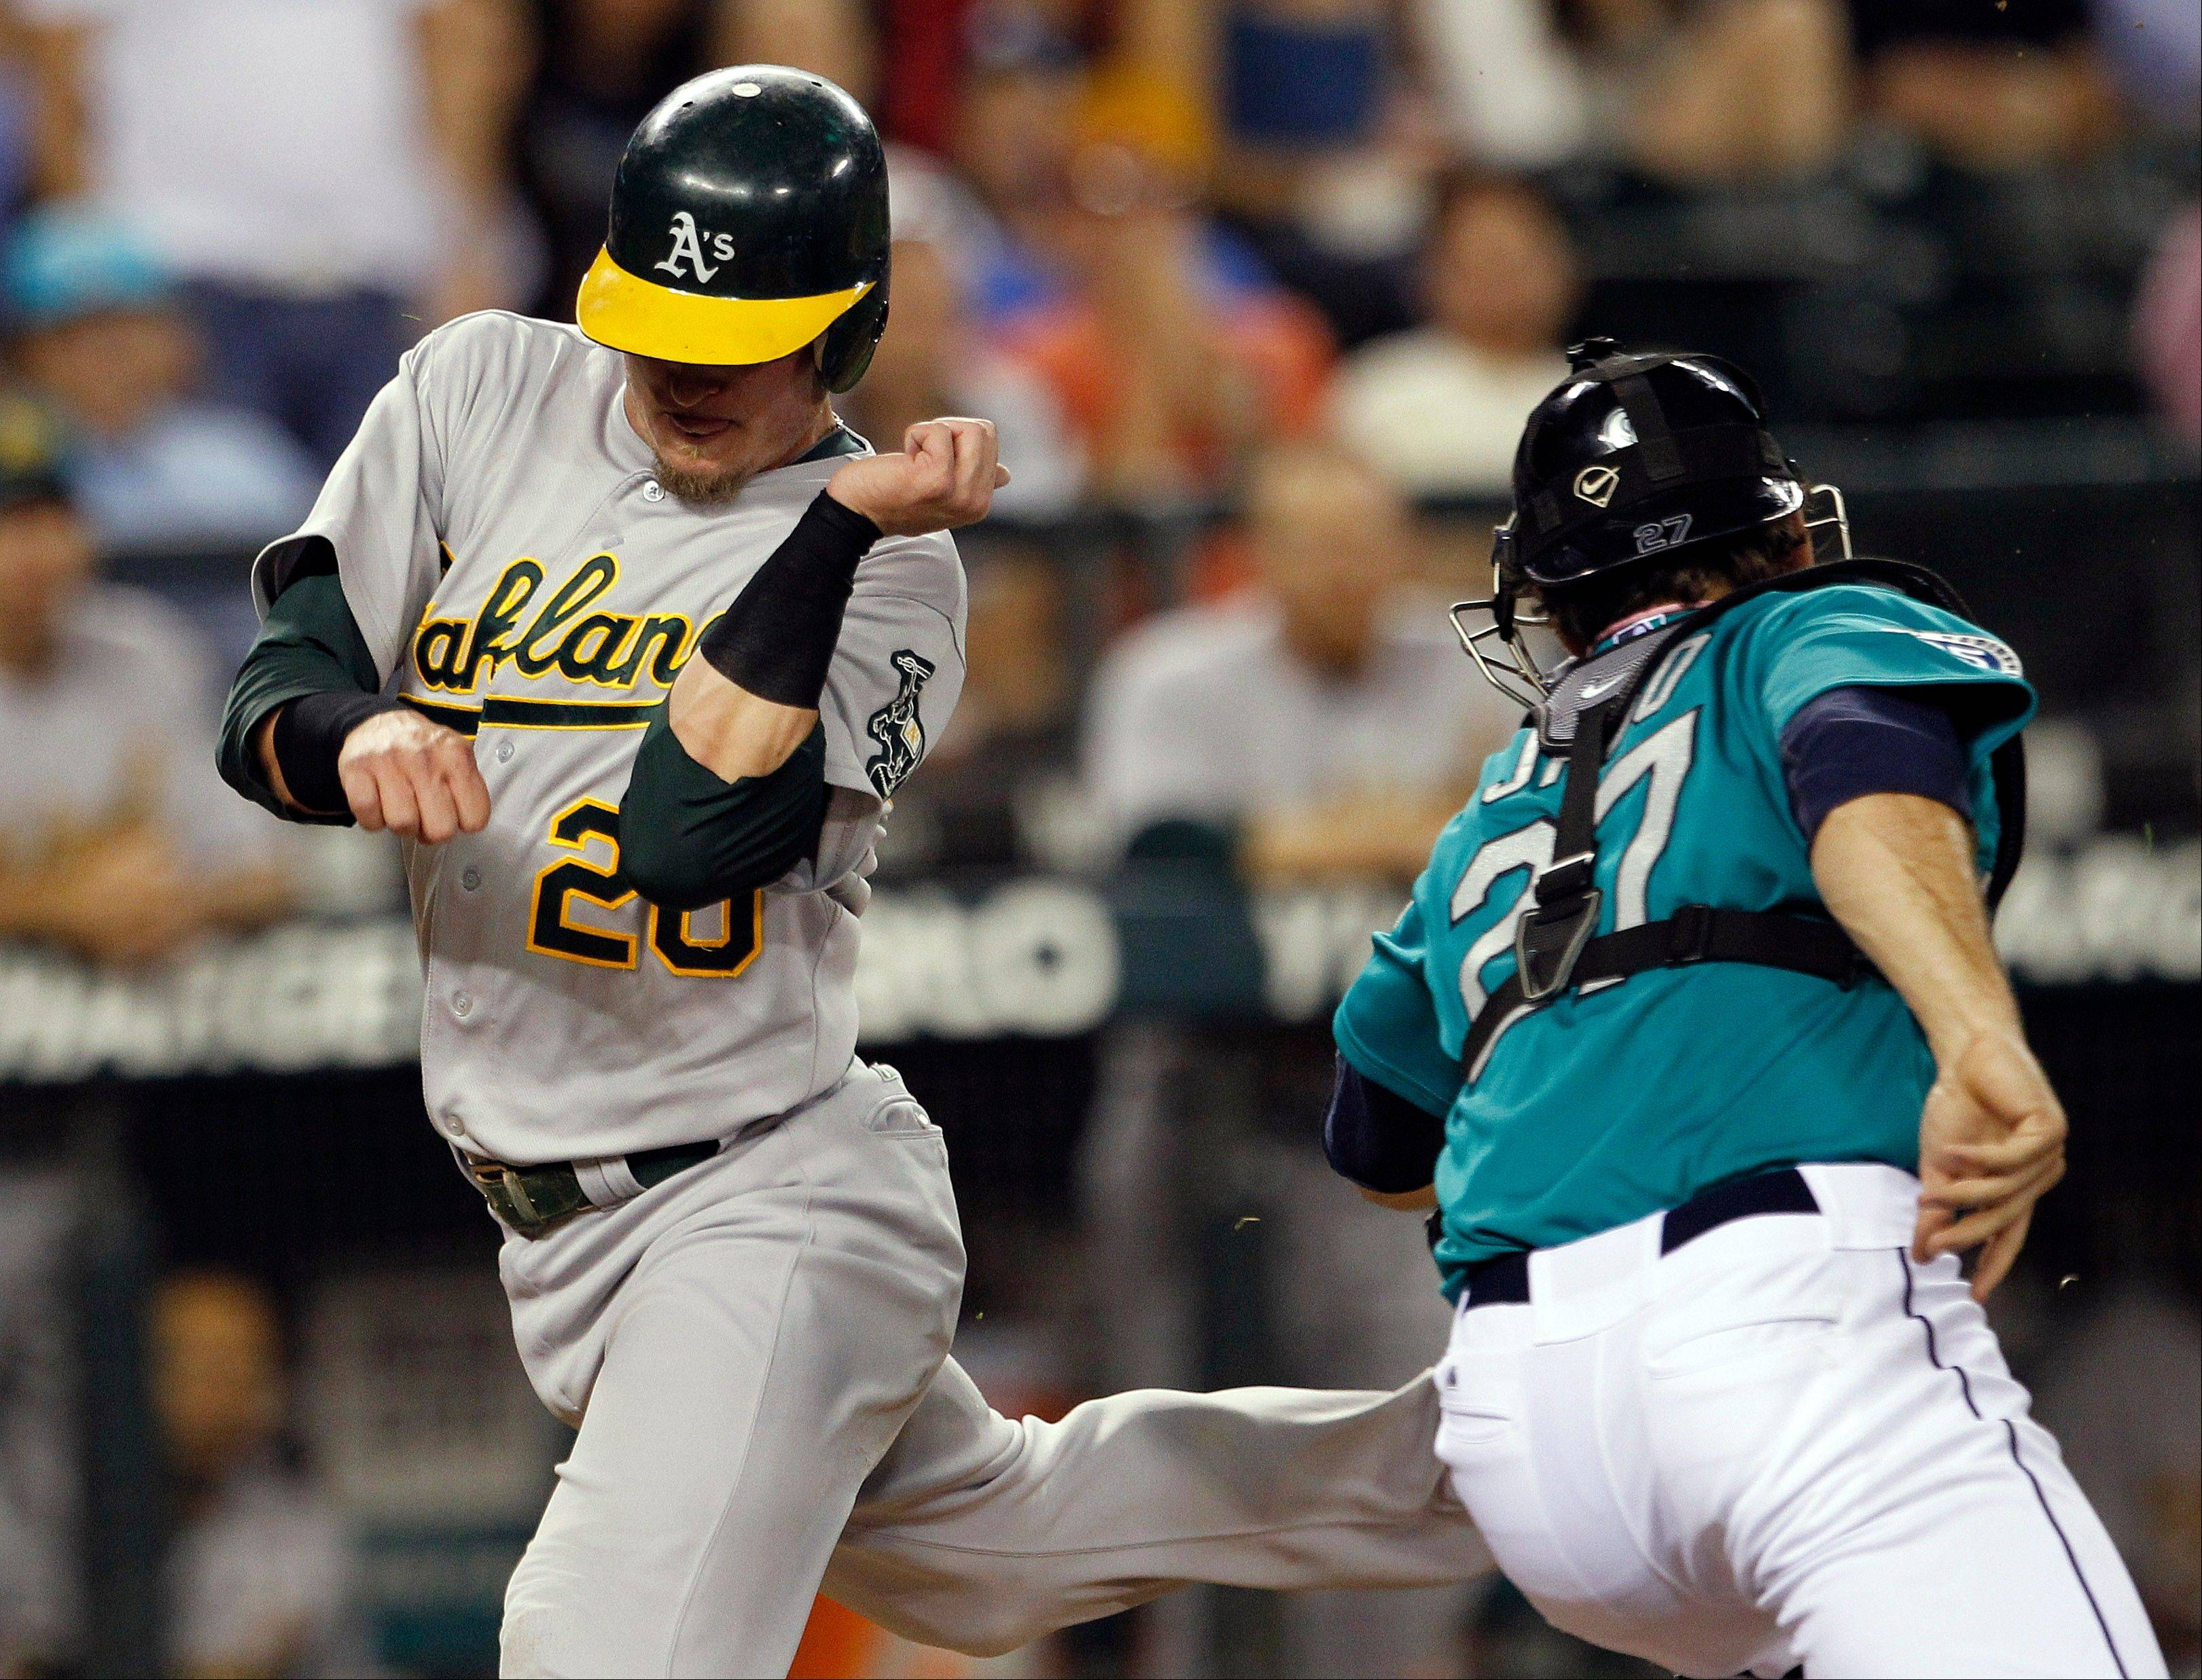 Oakland�s Josh Donaldson crosses home just ahead of a tag by Mariners catcher John Jaso in the fifth inning Friday in Seattle.